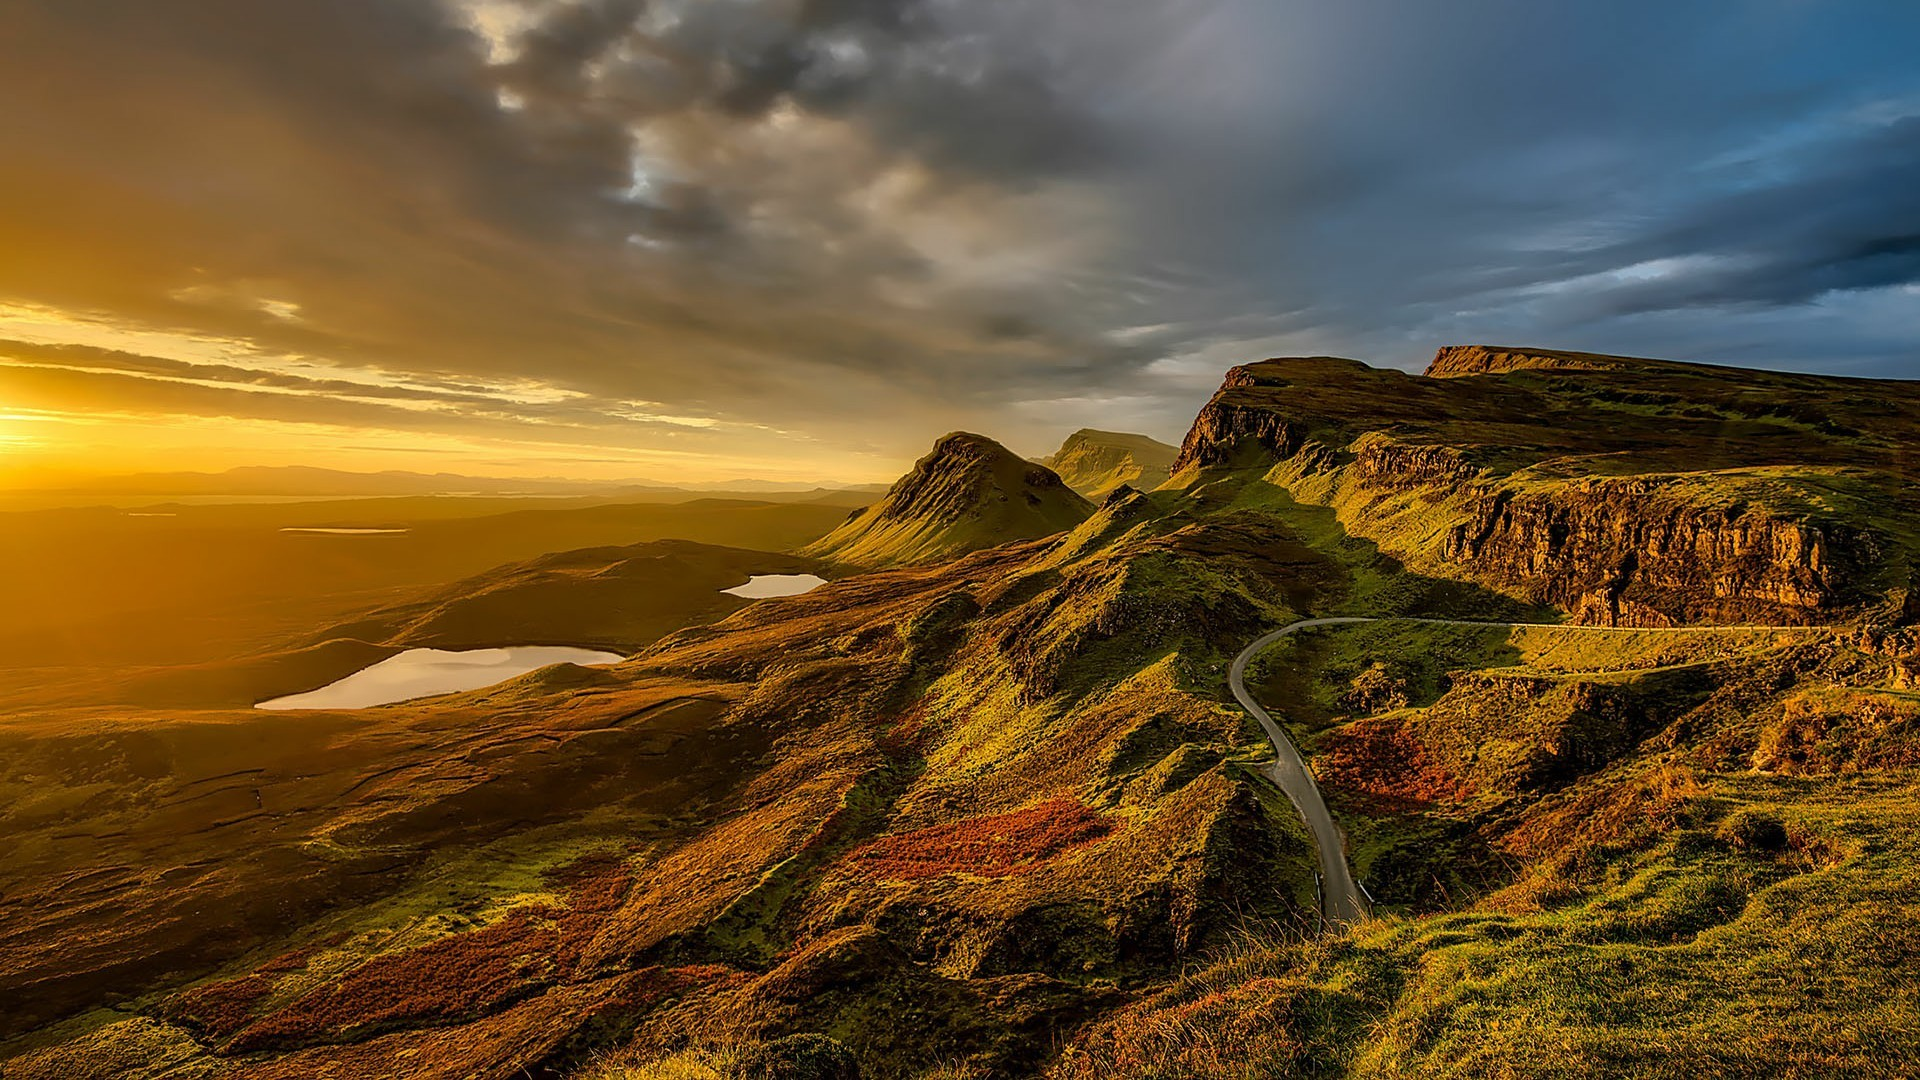 Res: 1920x1080, Isle Of Skye - Scottish Highlands Landscape Wallpaper | Wallpaper Studio 10  | Tens of thousands HD and UltraHD wallpapers for Android, Windows and Xbox